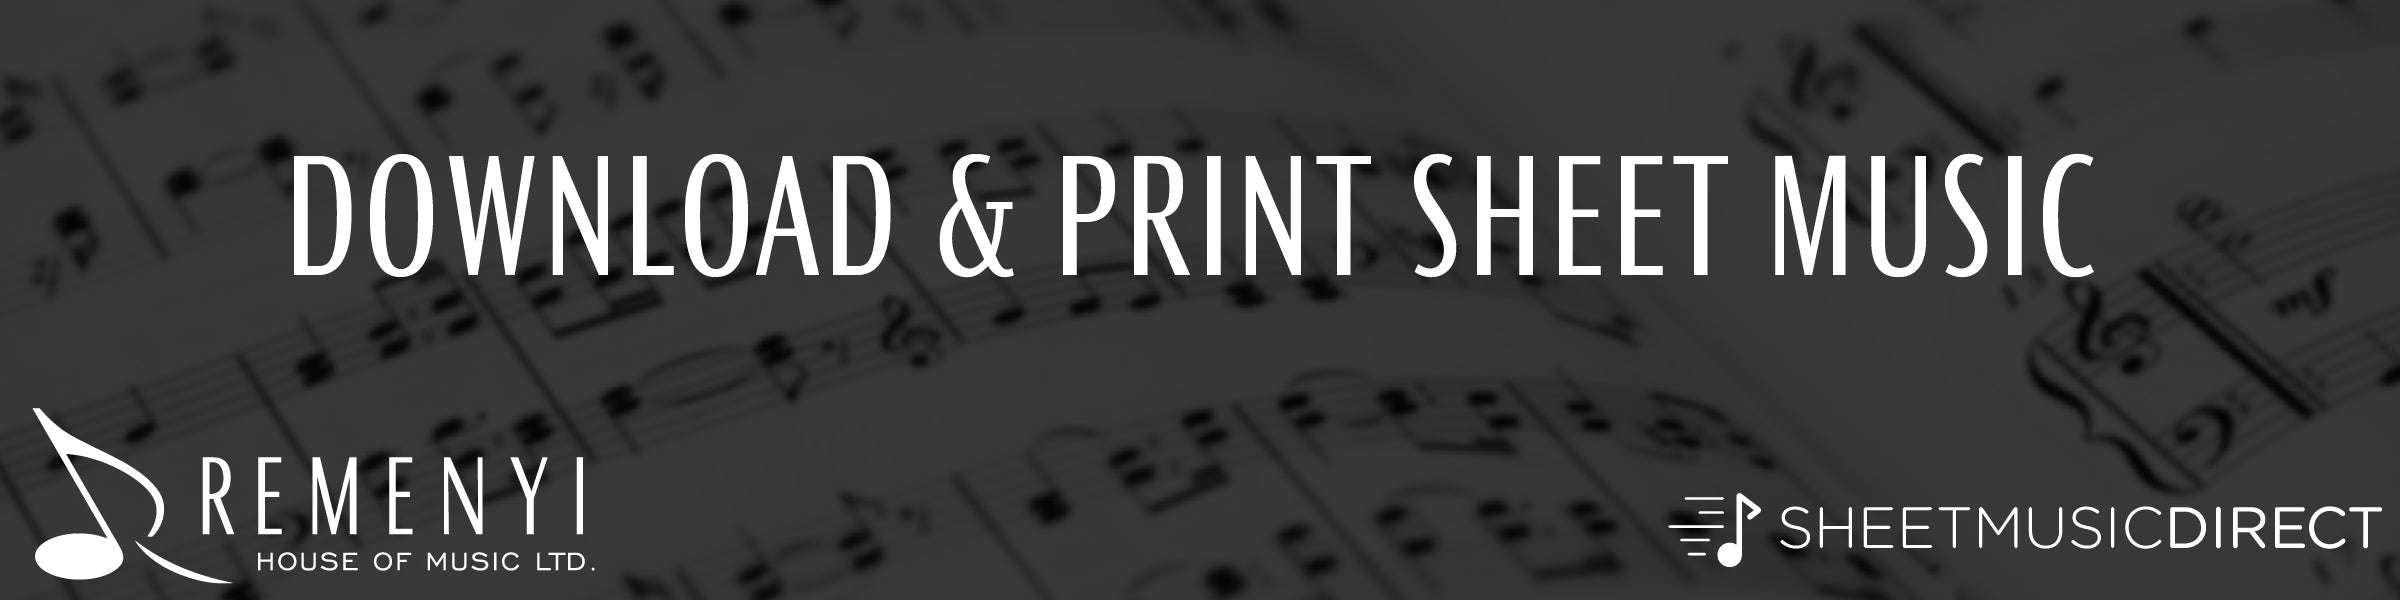 Download & Print Sheet Music